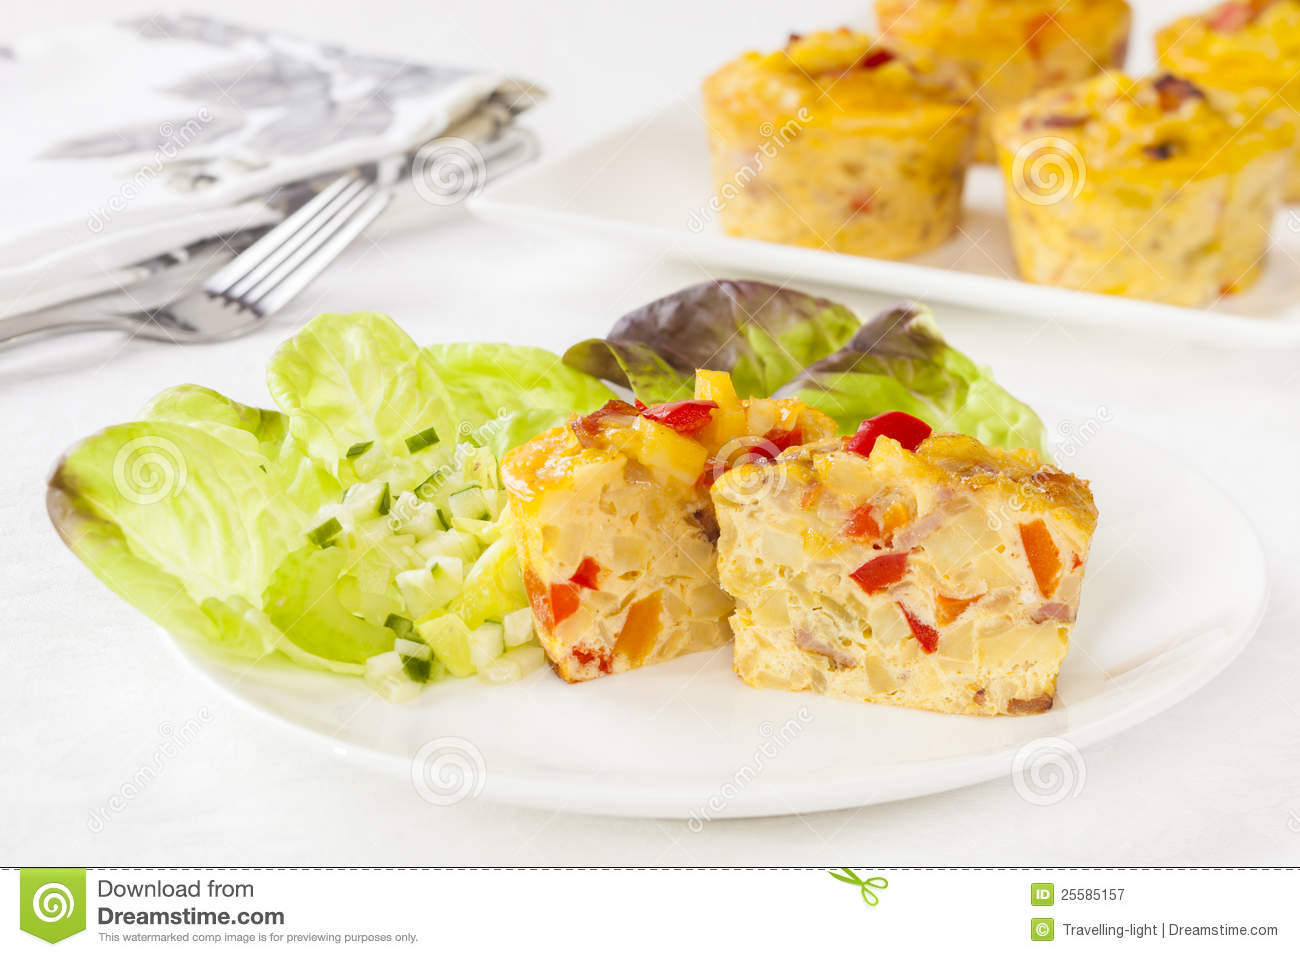 Mini frittata on a plate with salad.